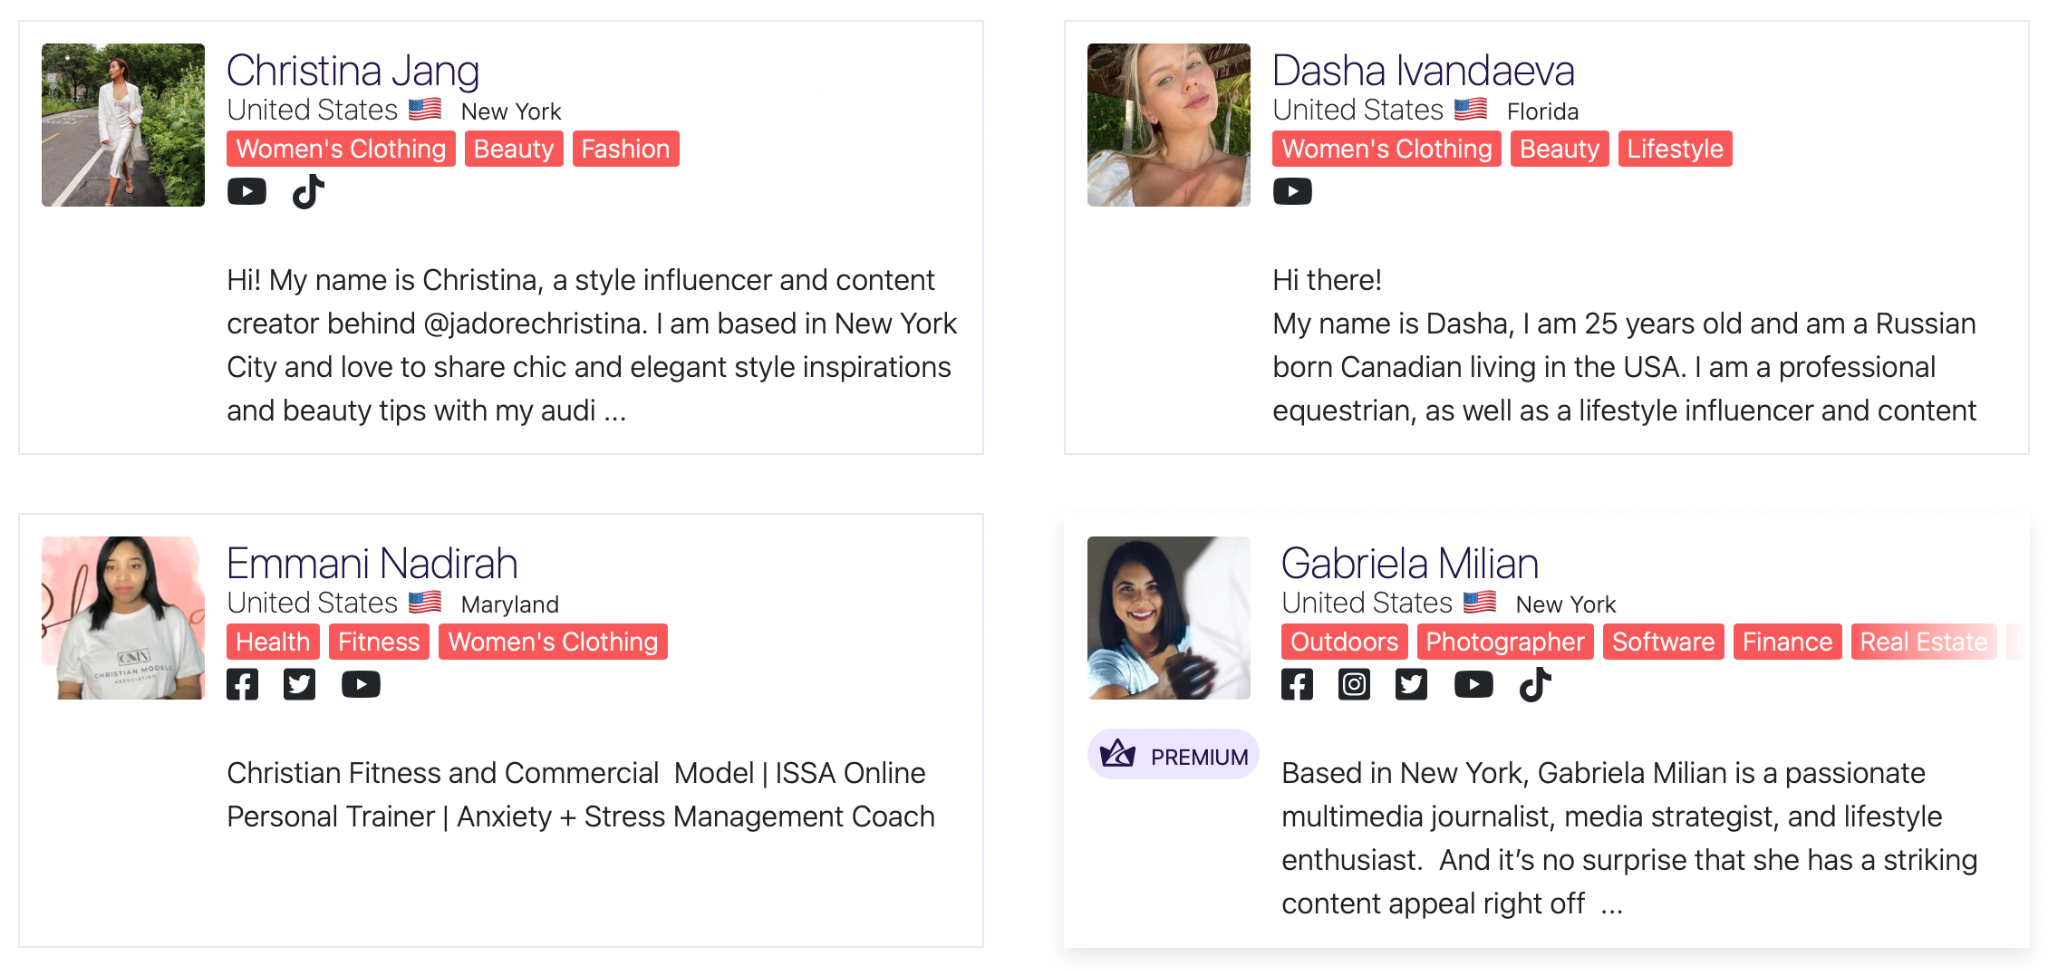 Profile snippets of influencers featured on Afluencer